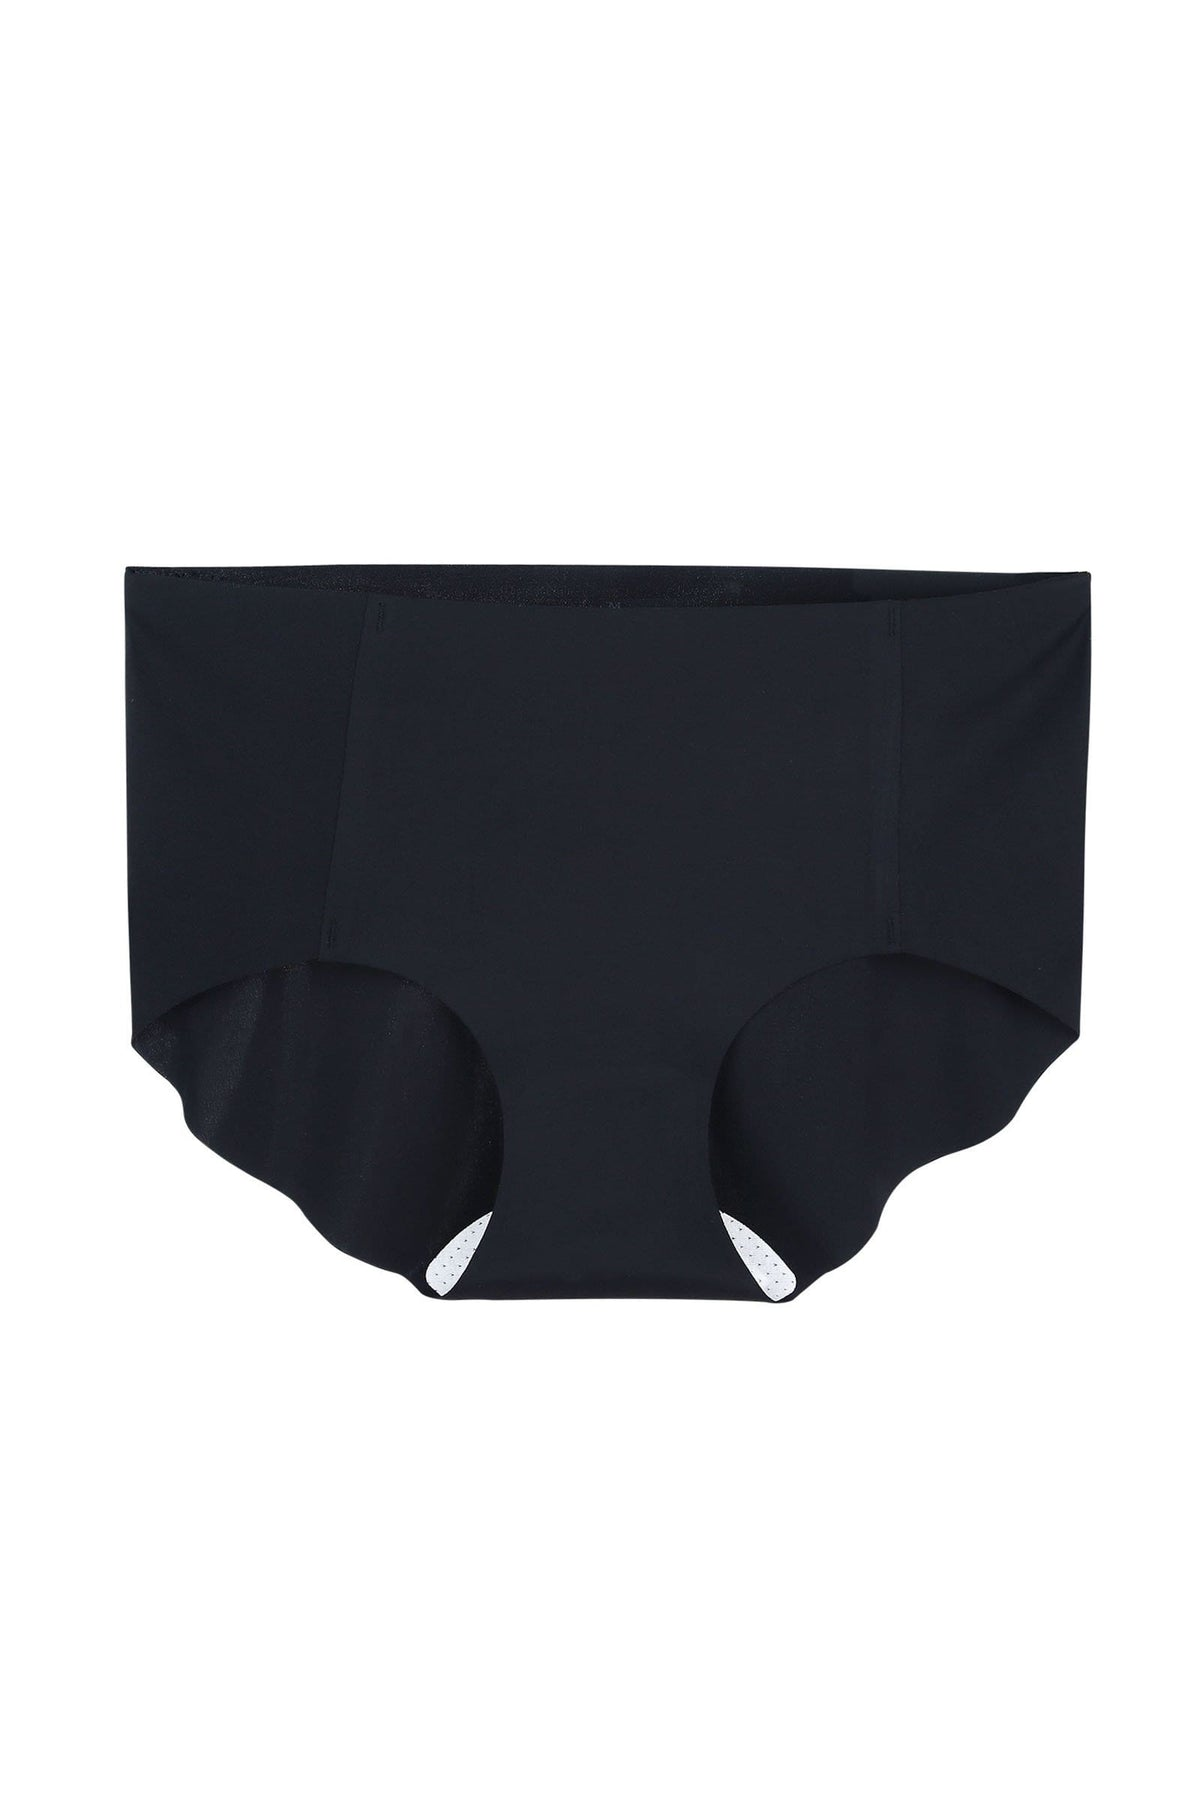 Black Seamless Mid-Waist Brief (1 pack)